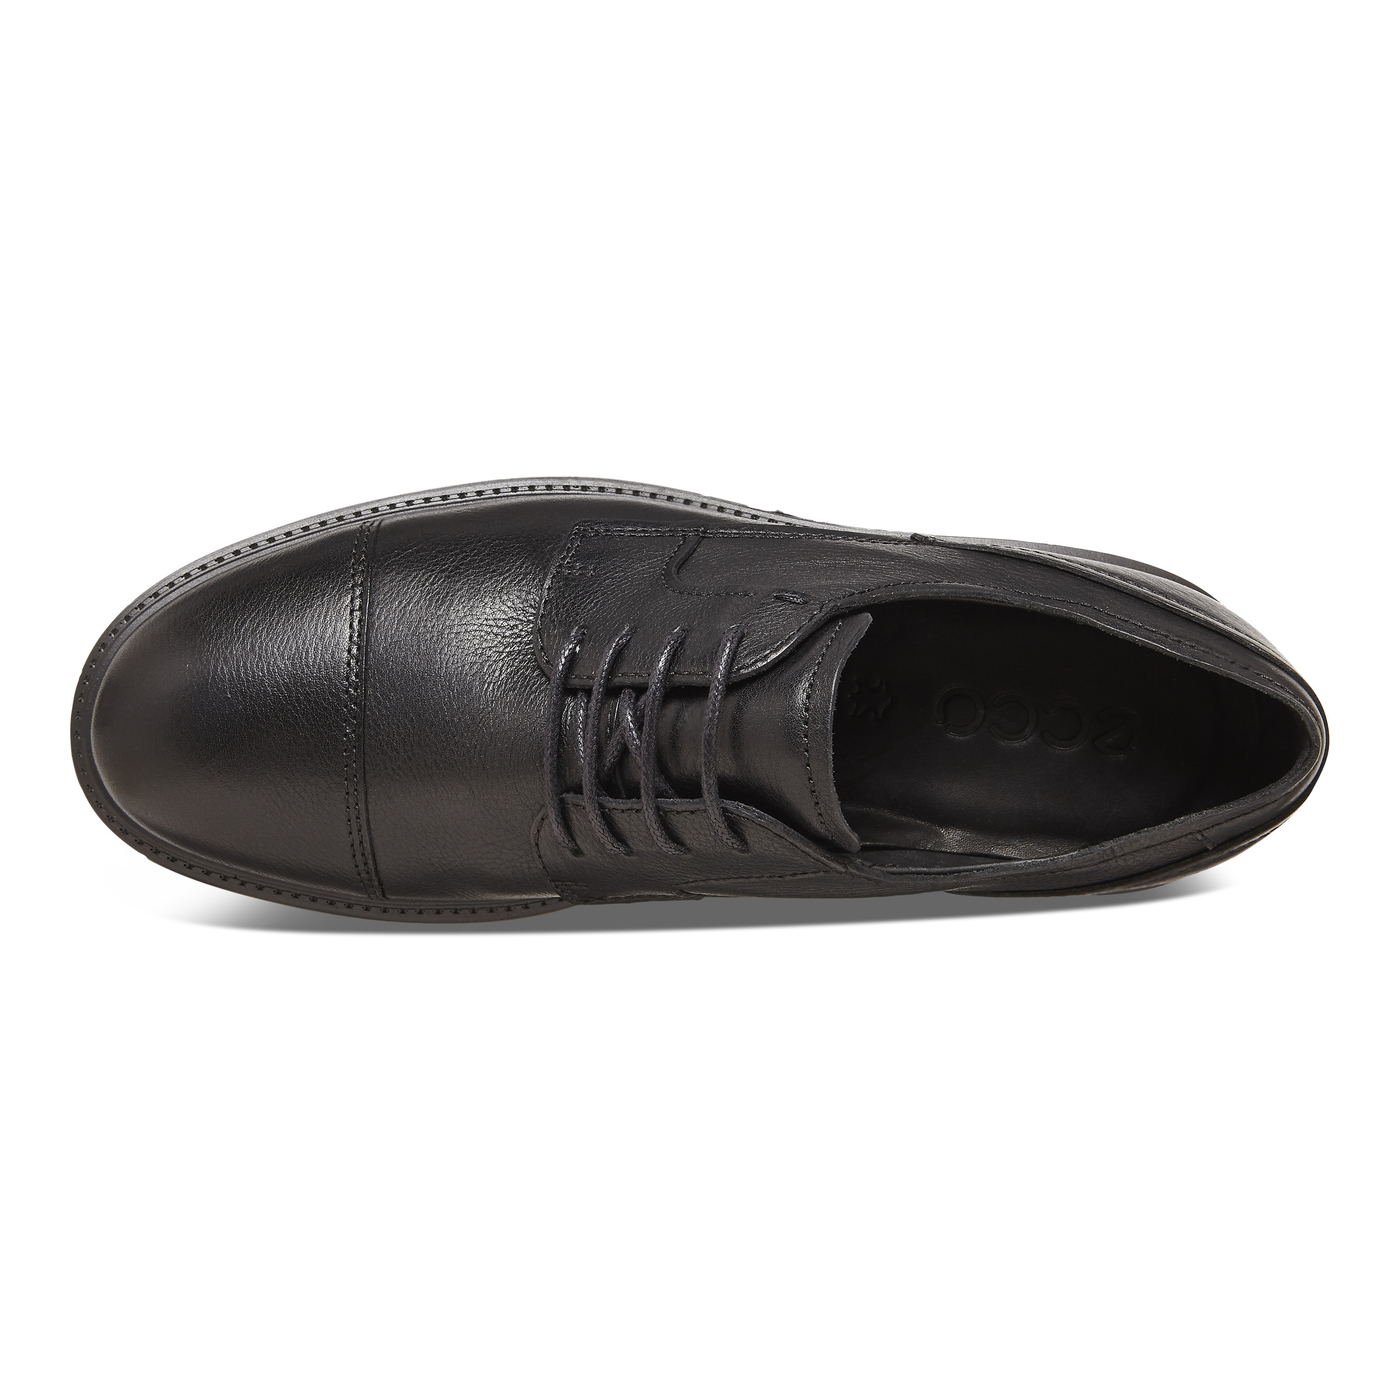 ECCO Knoxville Cap Toe Tie  c9baa37bdbe